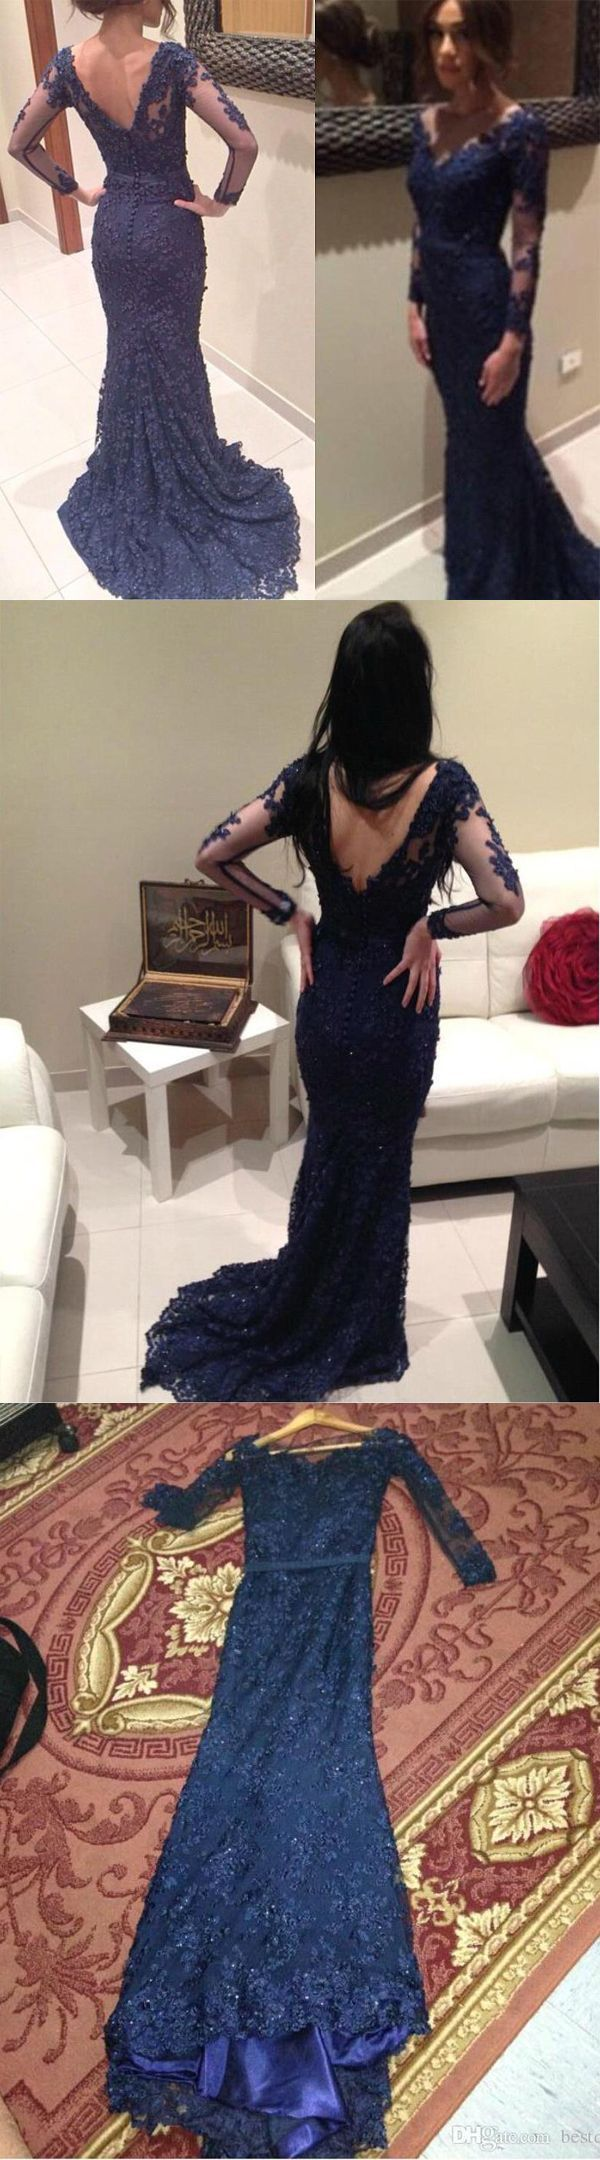 New mermaid v neck long sleeves navy blue lace prom dresses evening